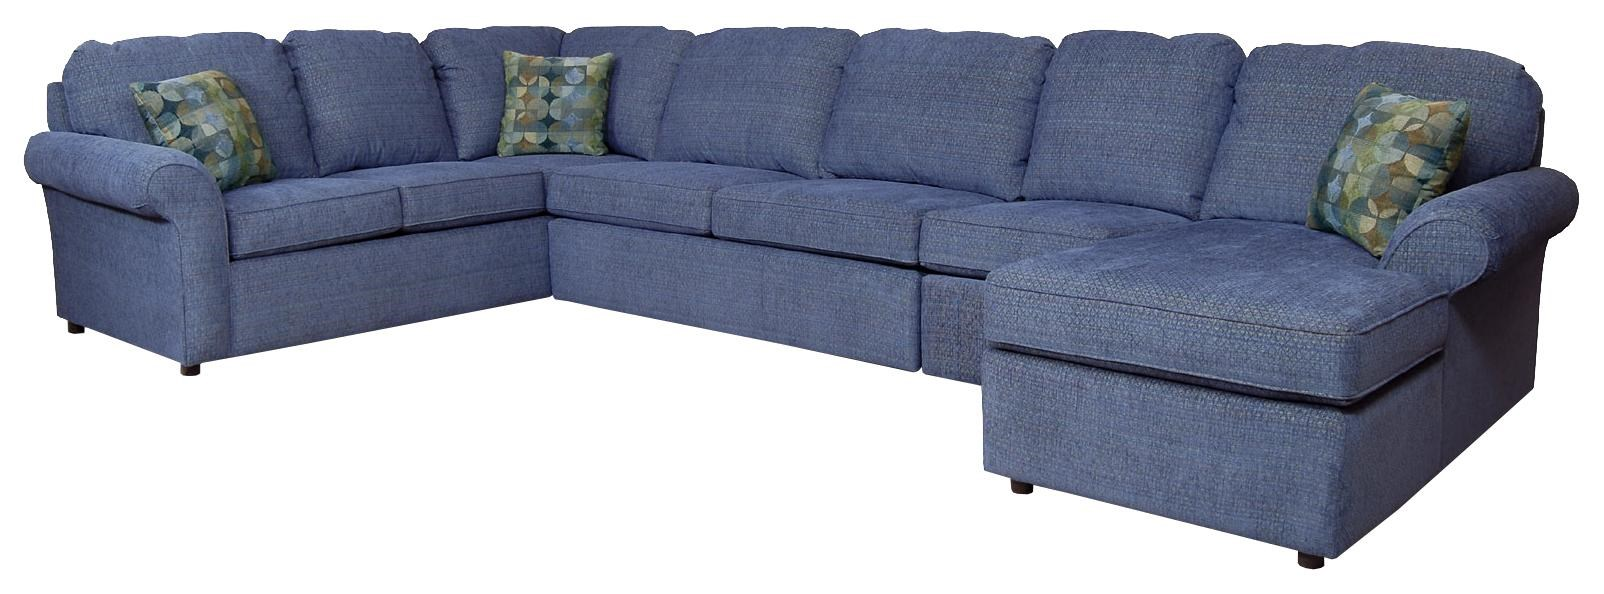 England Malibu6 7 Seat (right Side) Chaise Sectional ...